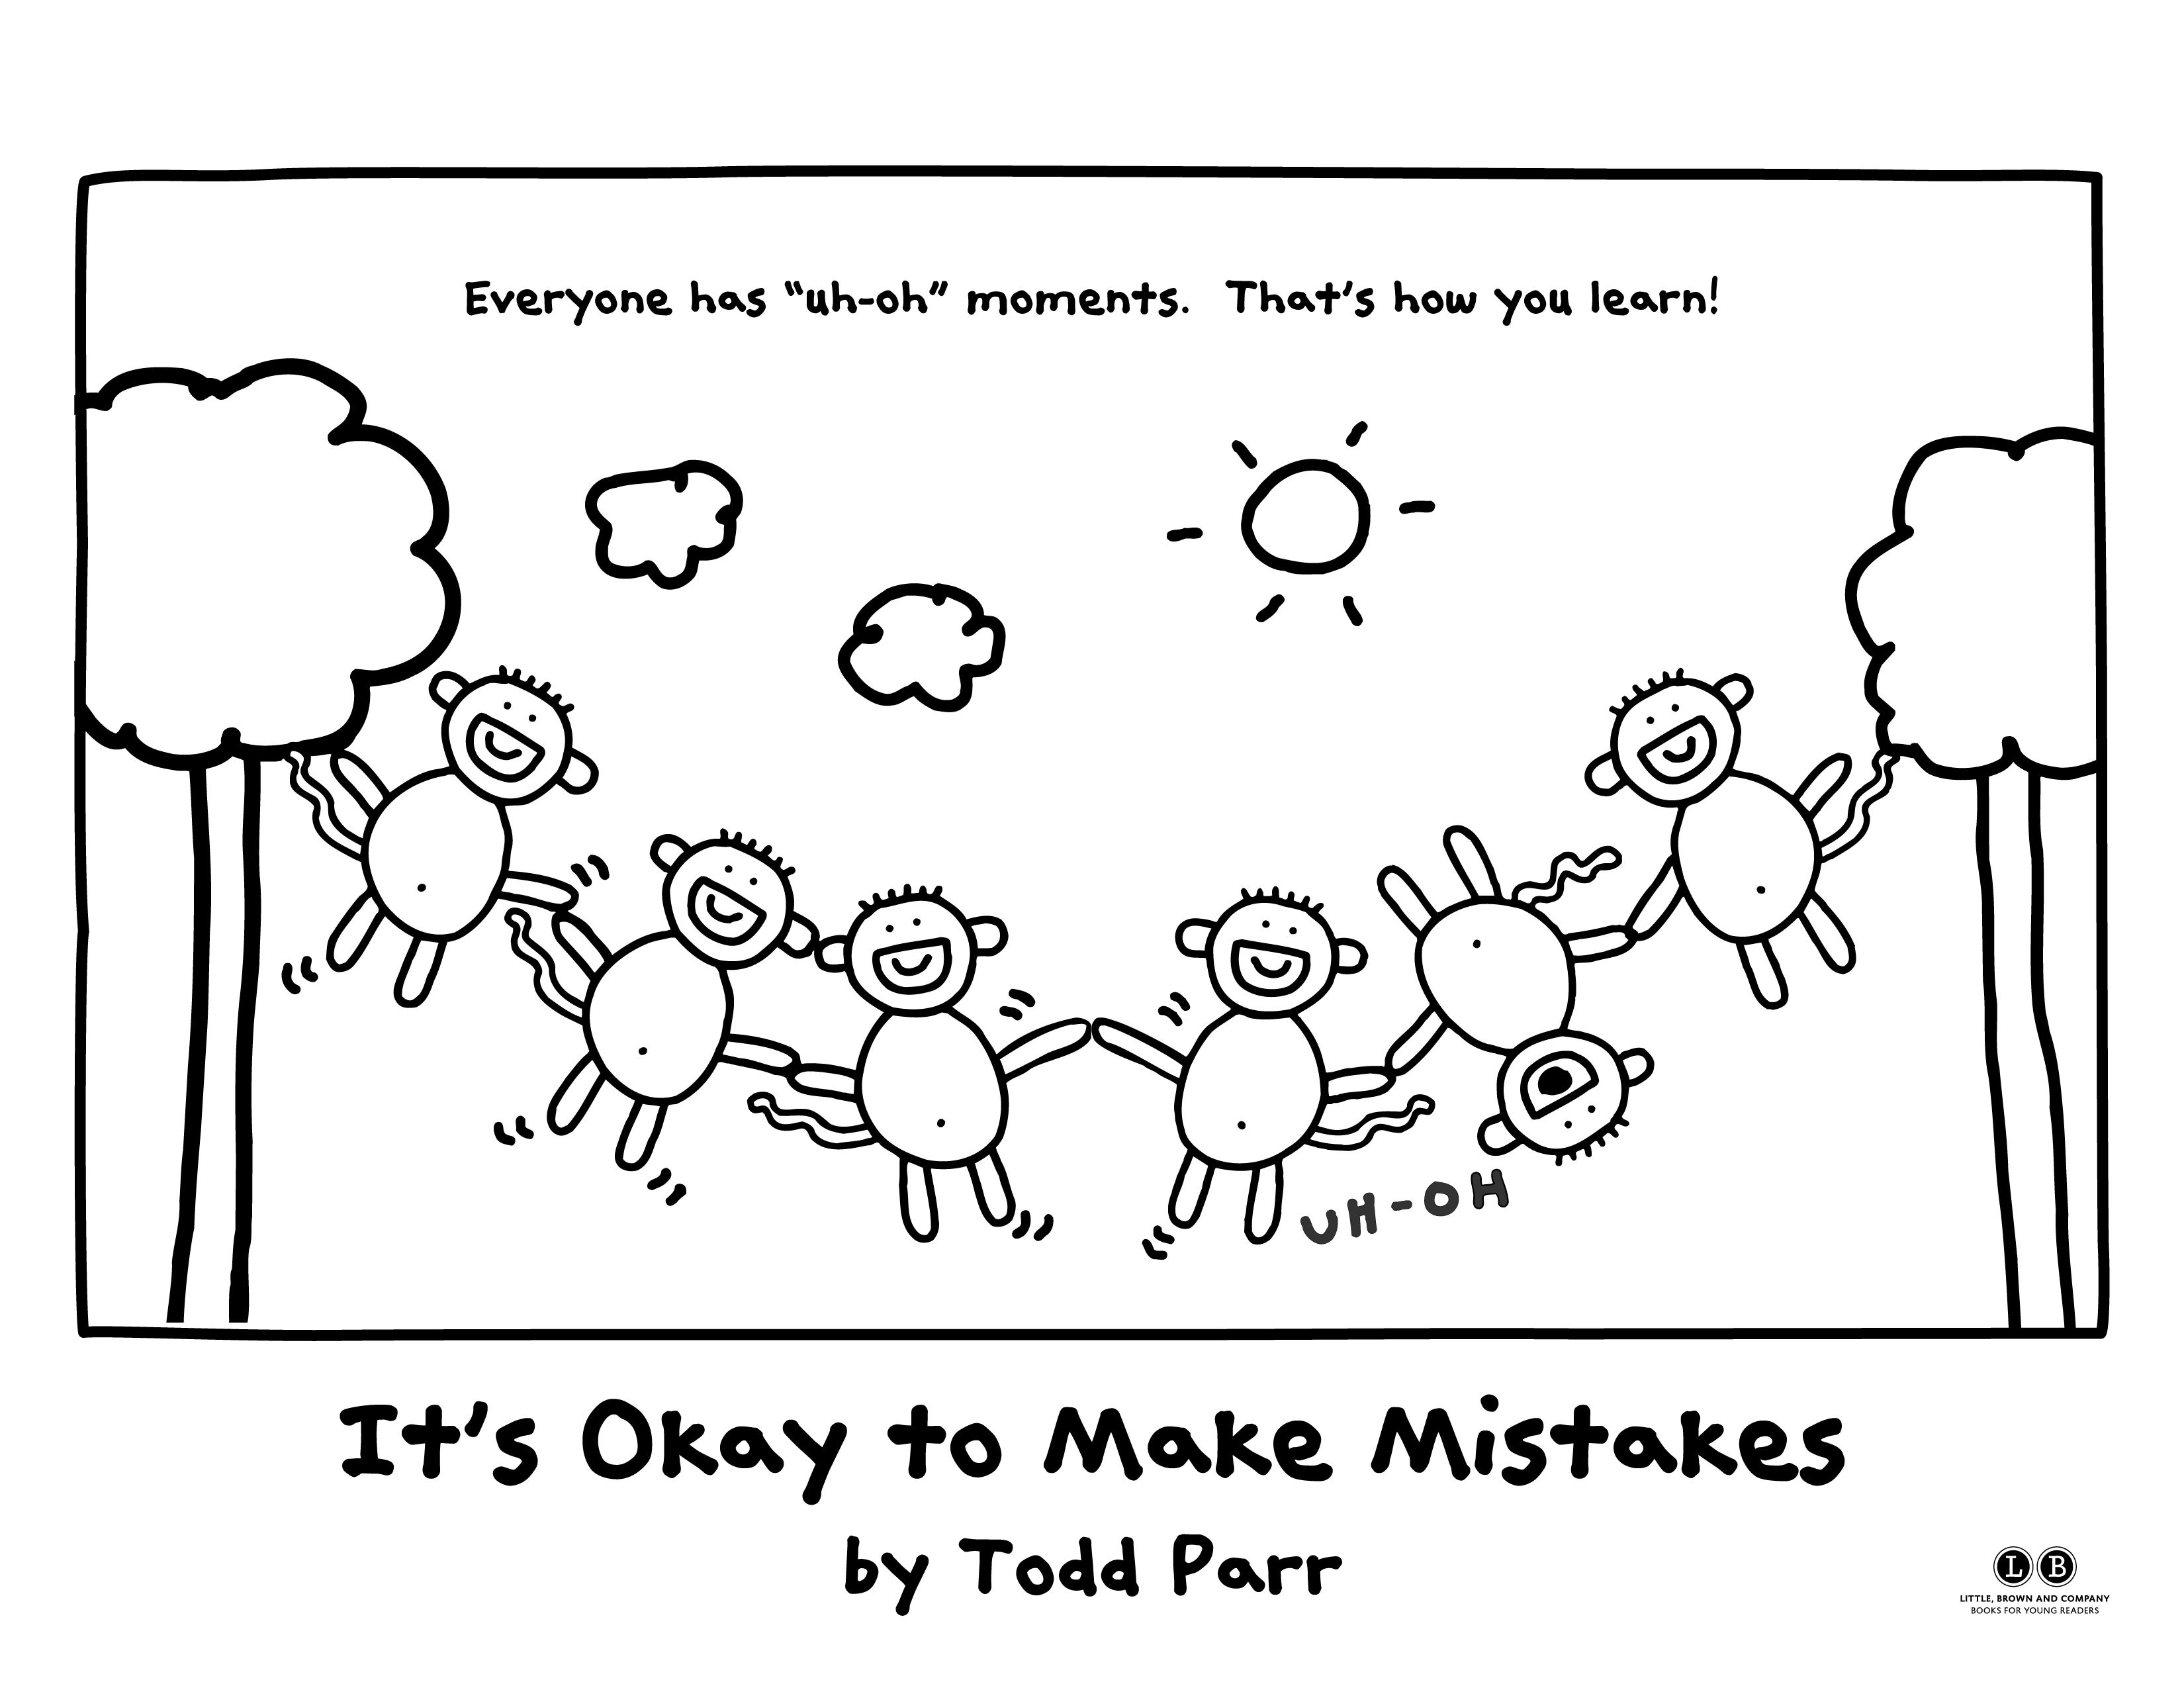 Coloring Pages! From It' Okay to Make Mistakes by Todd